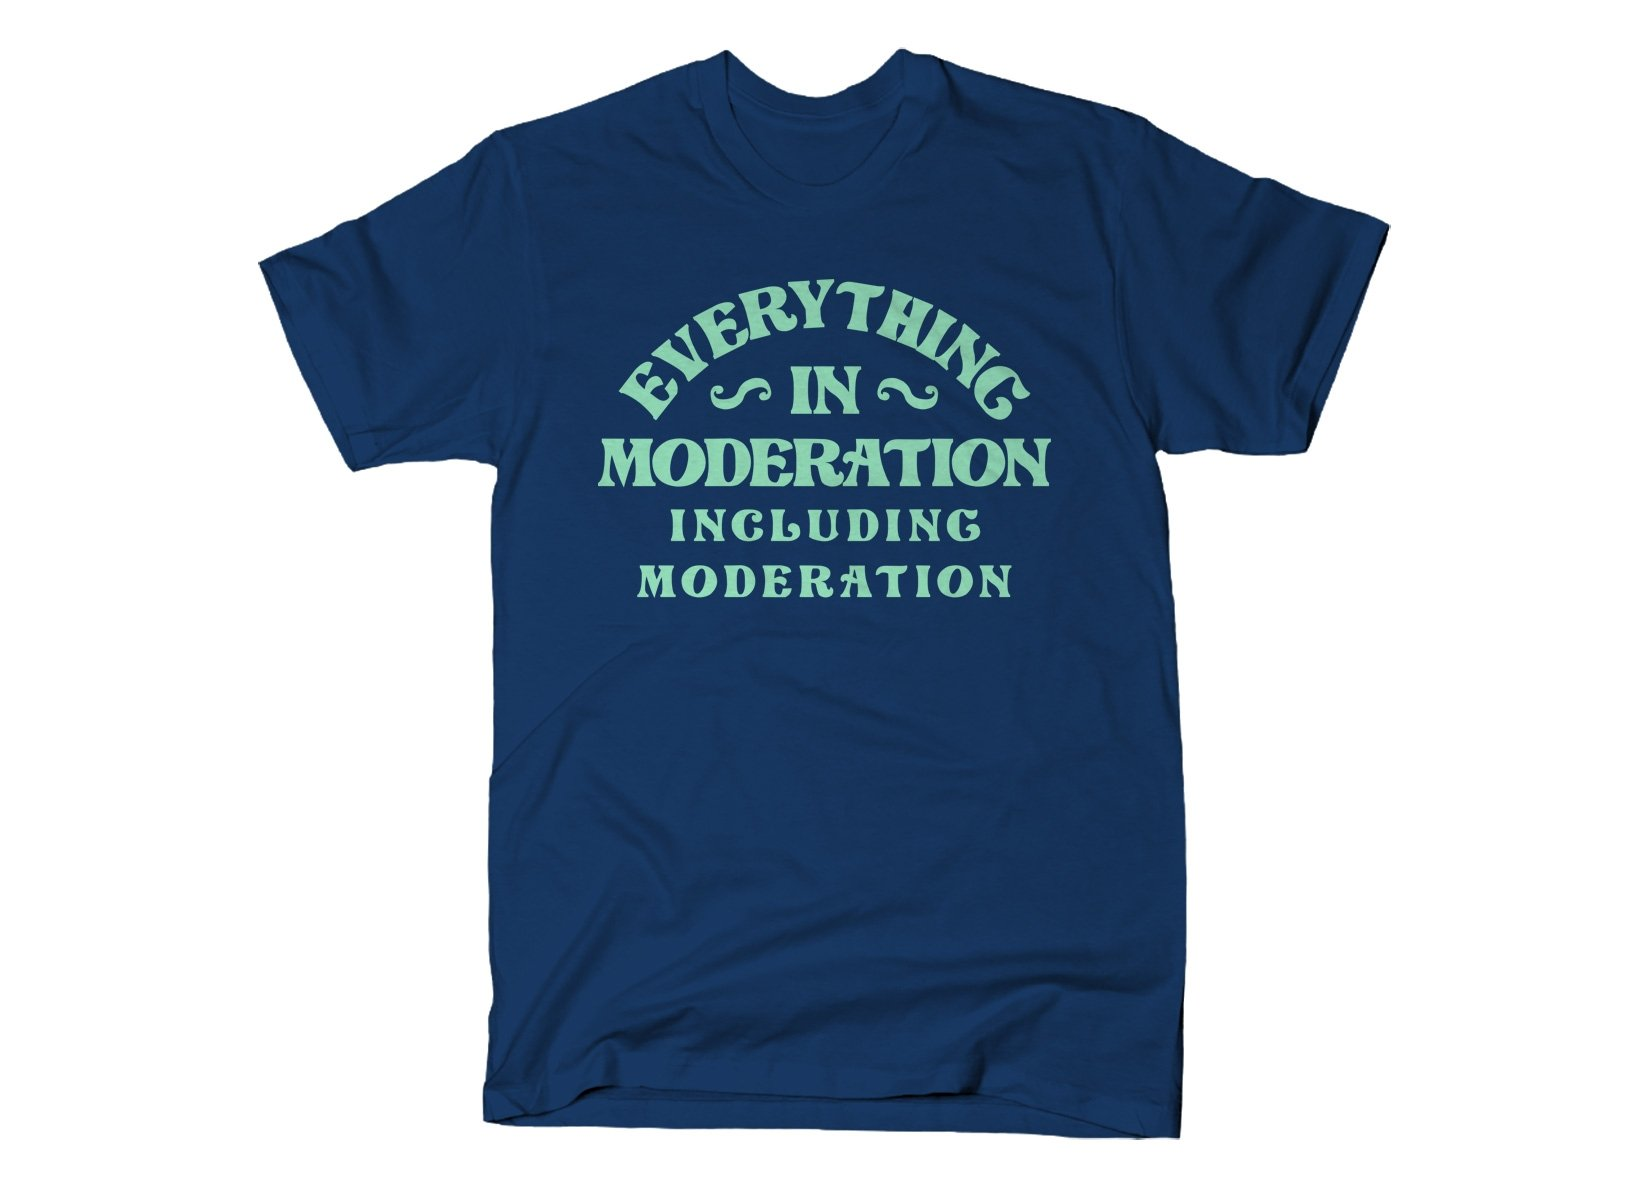 Everything In Moderation Including Moderation on Mens T-Shirt